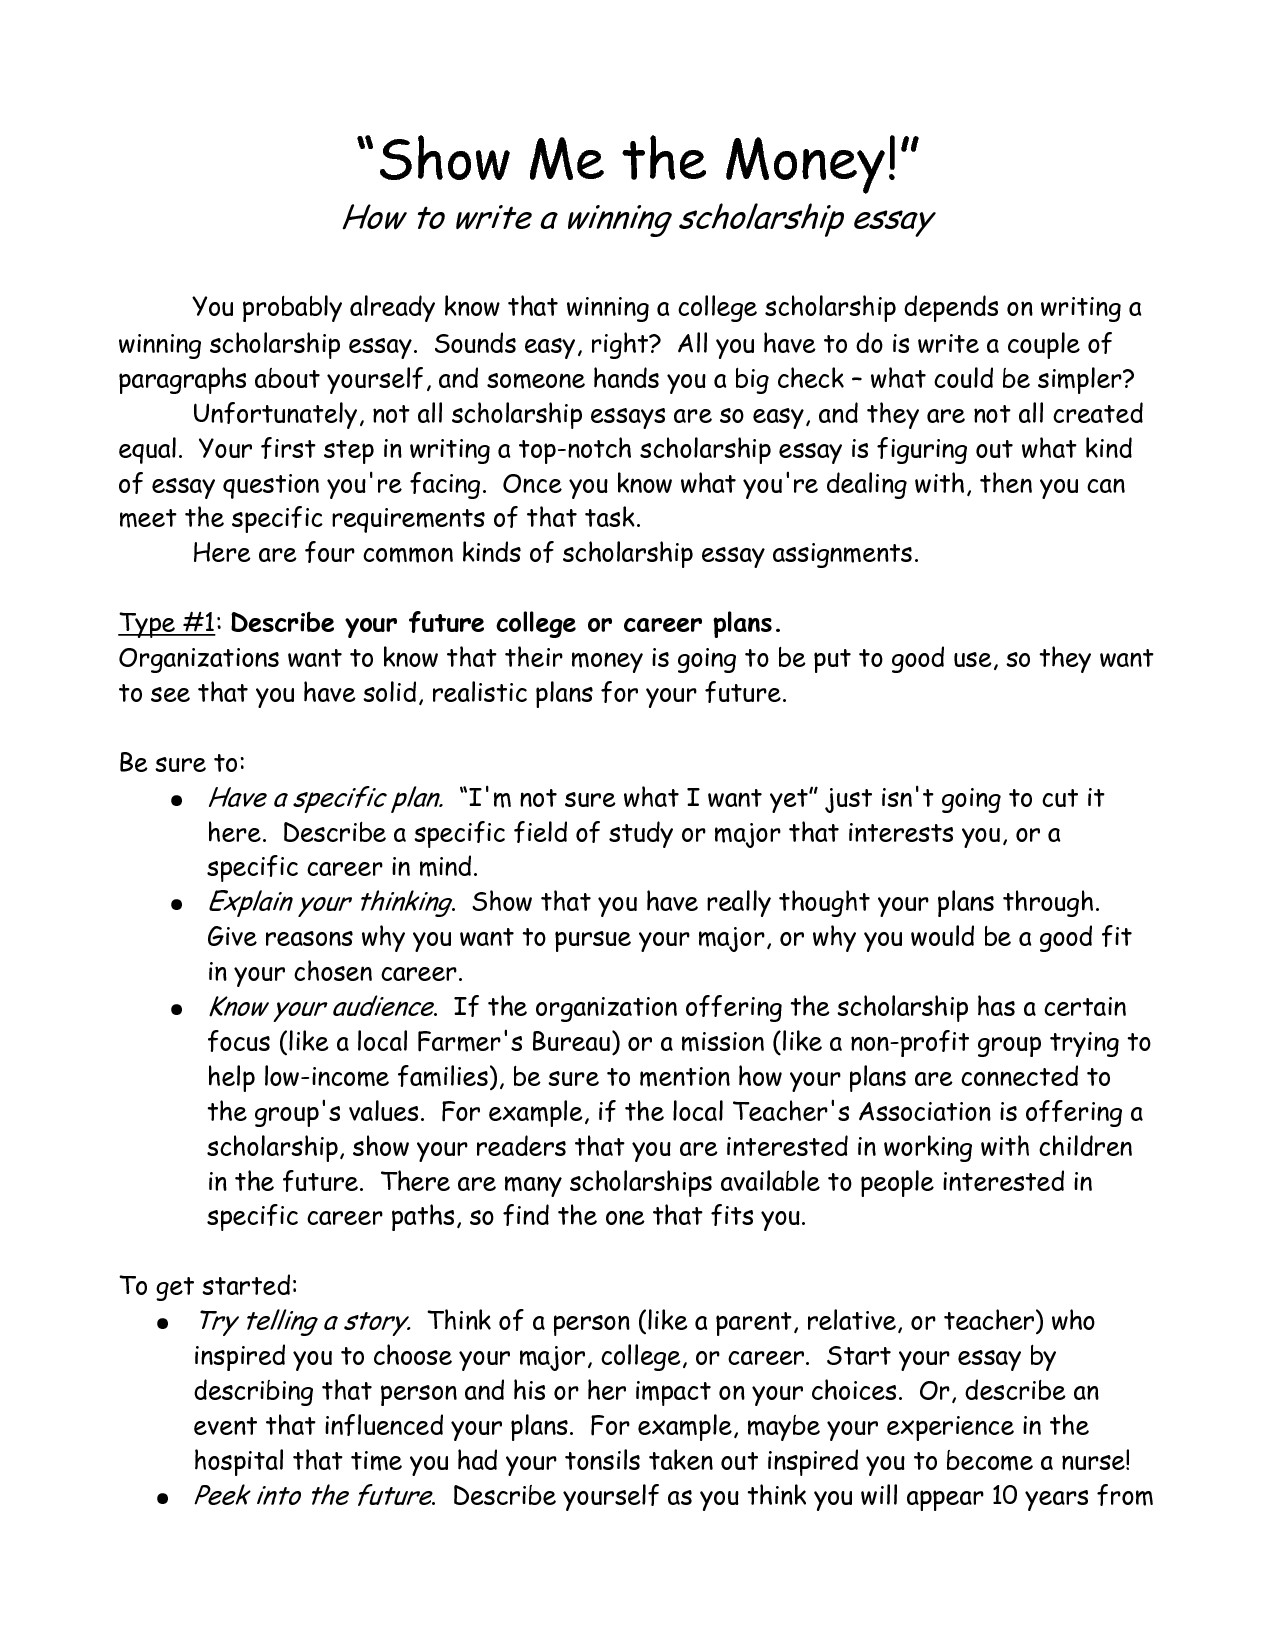 How to write an application essay describing yourself